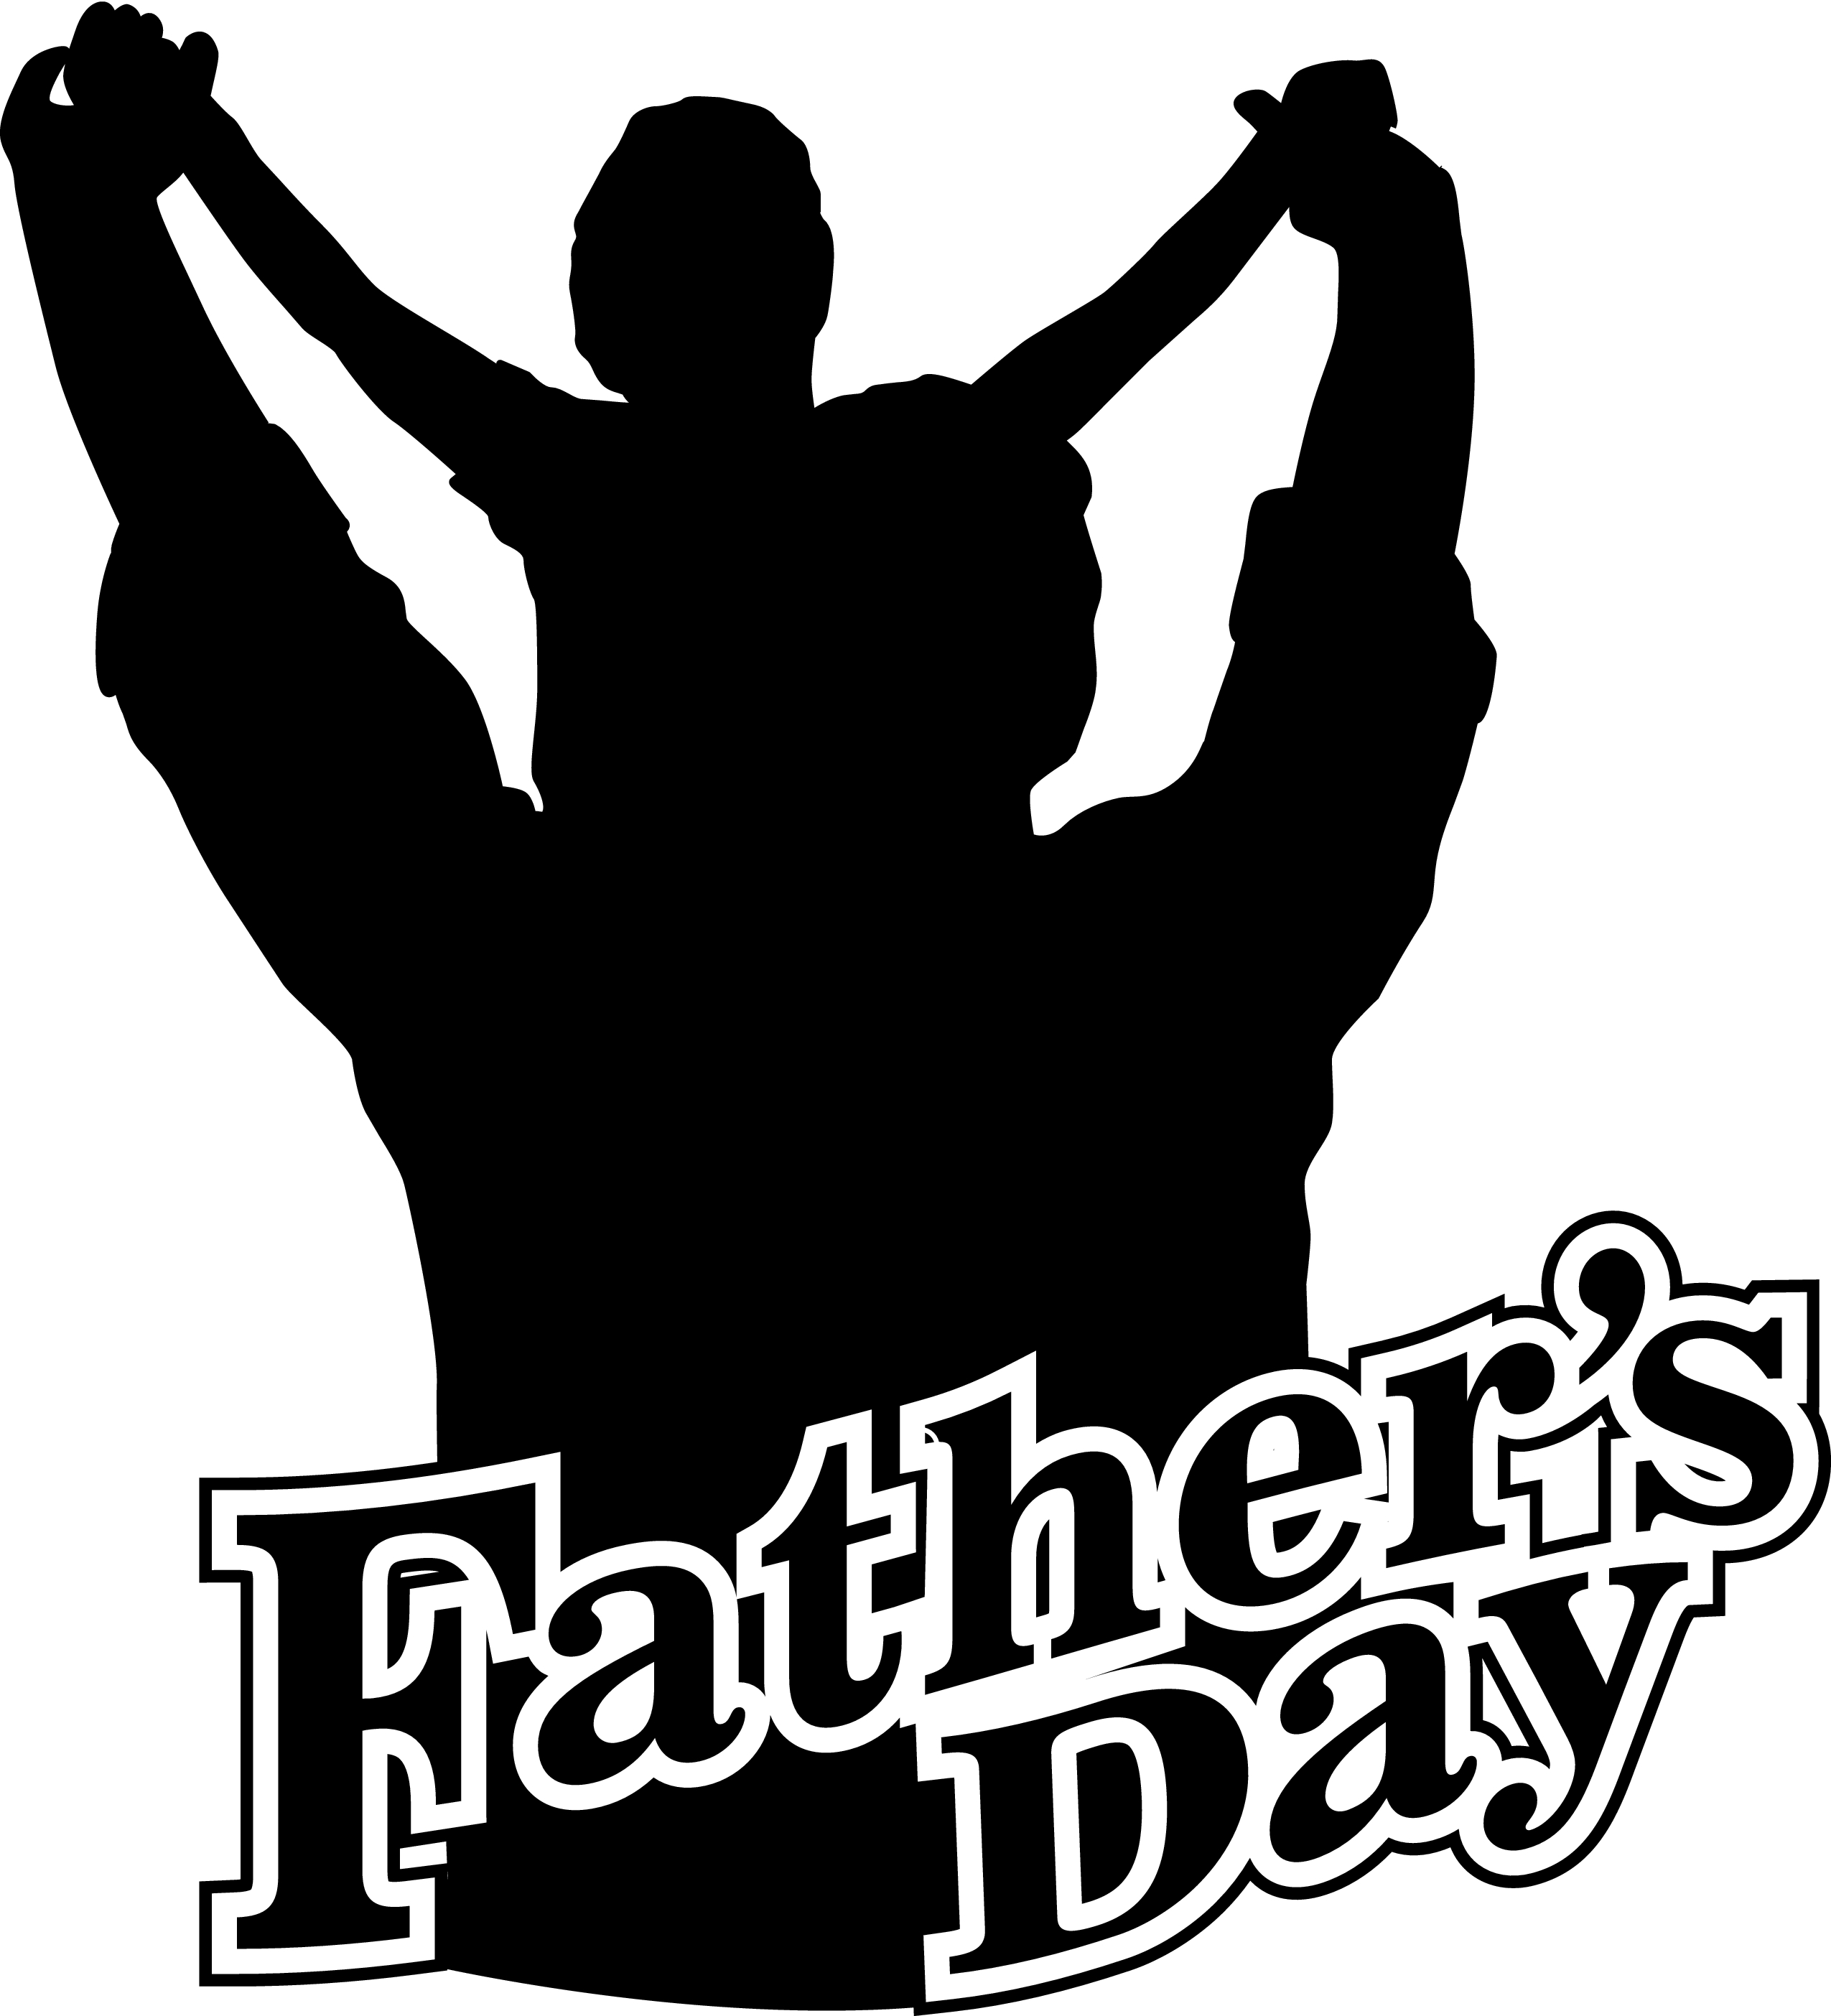 Fathers day clipart clipart 2